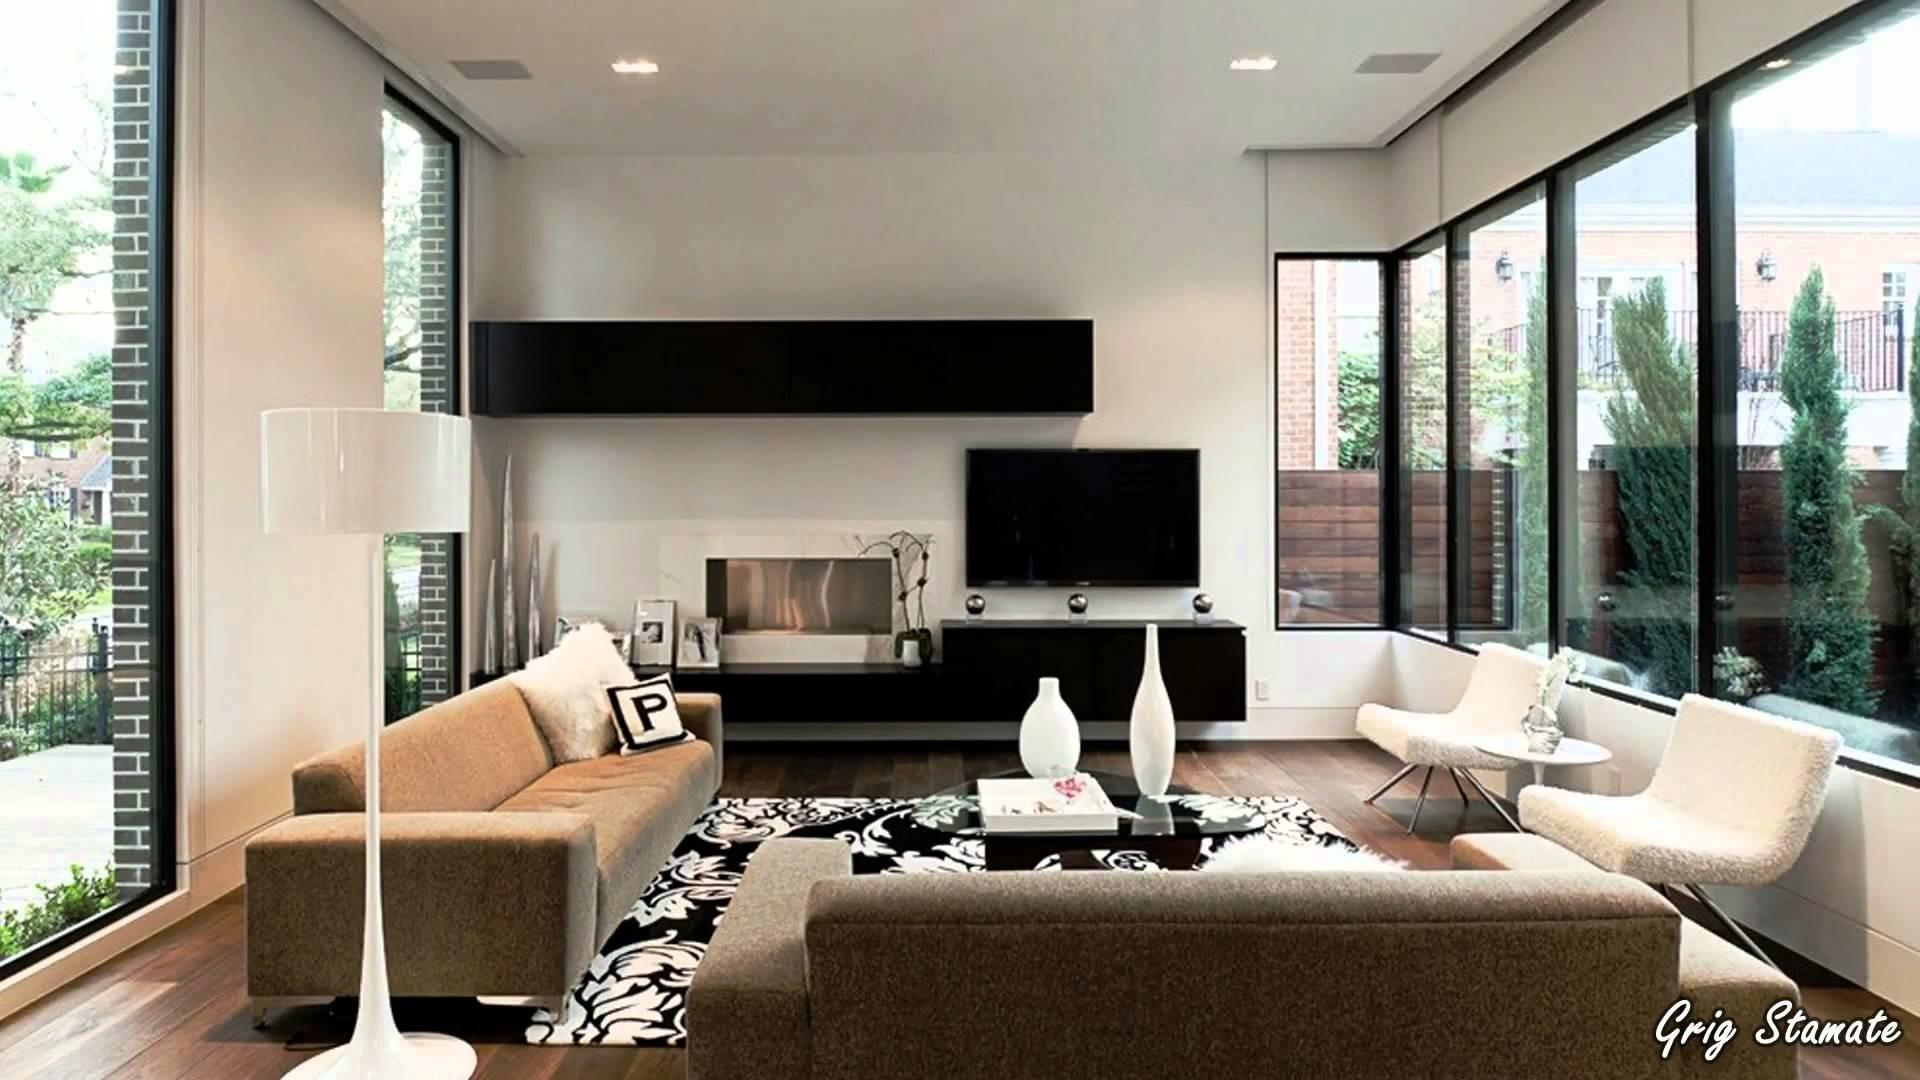 Ultra Modern Living Room Design Ideas - Decoratorist - #9